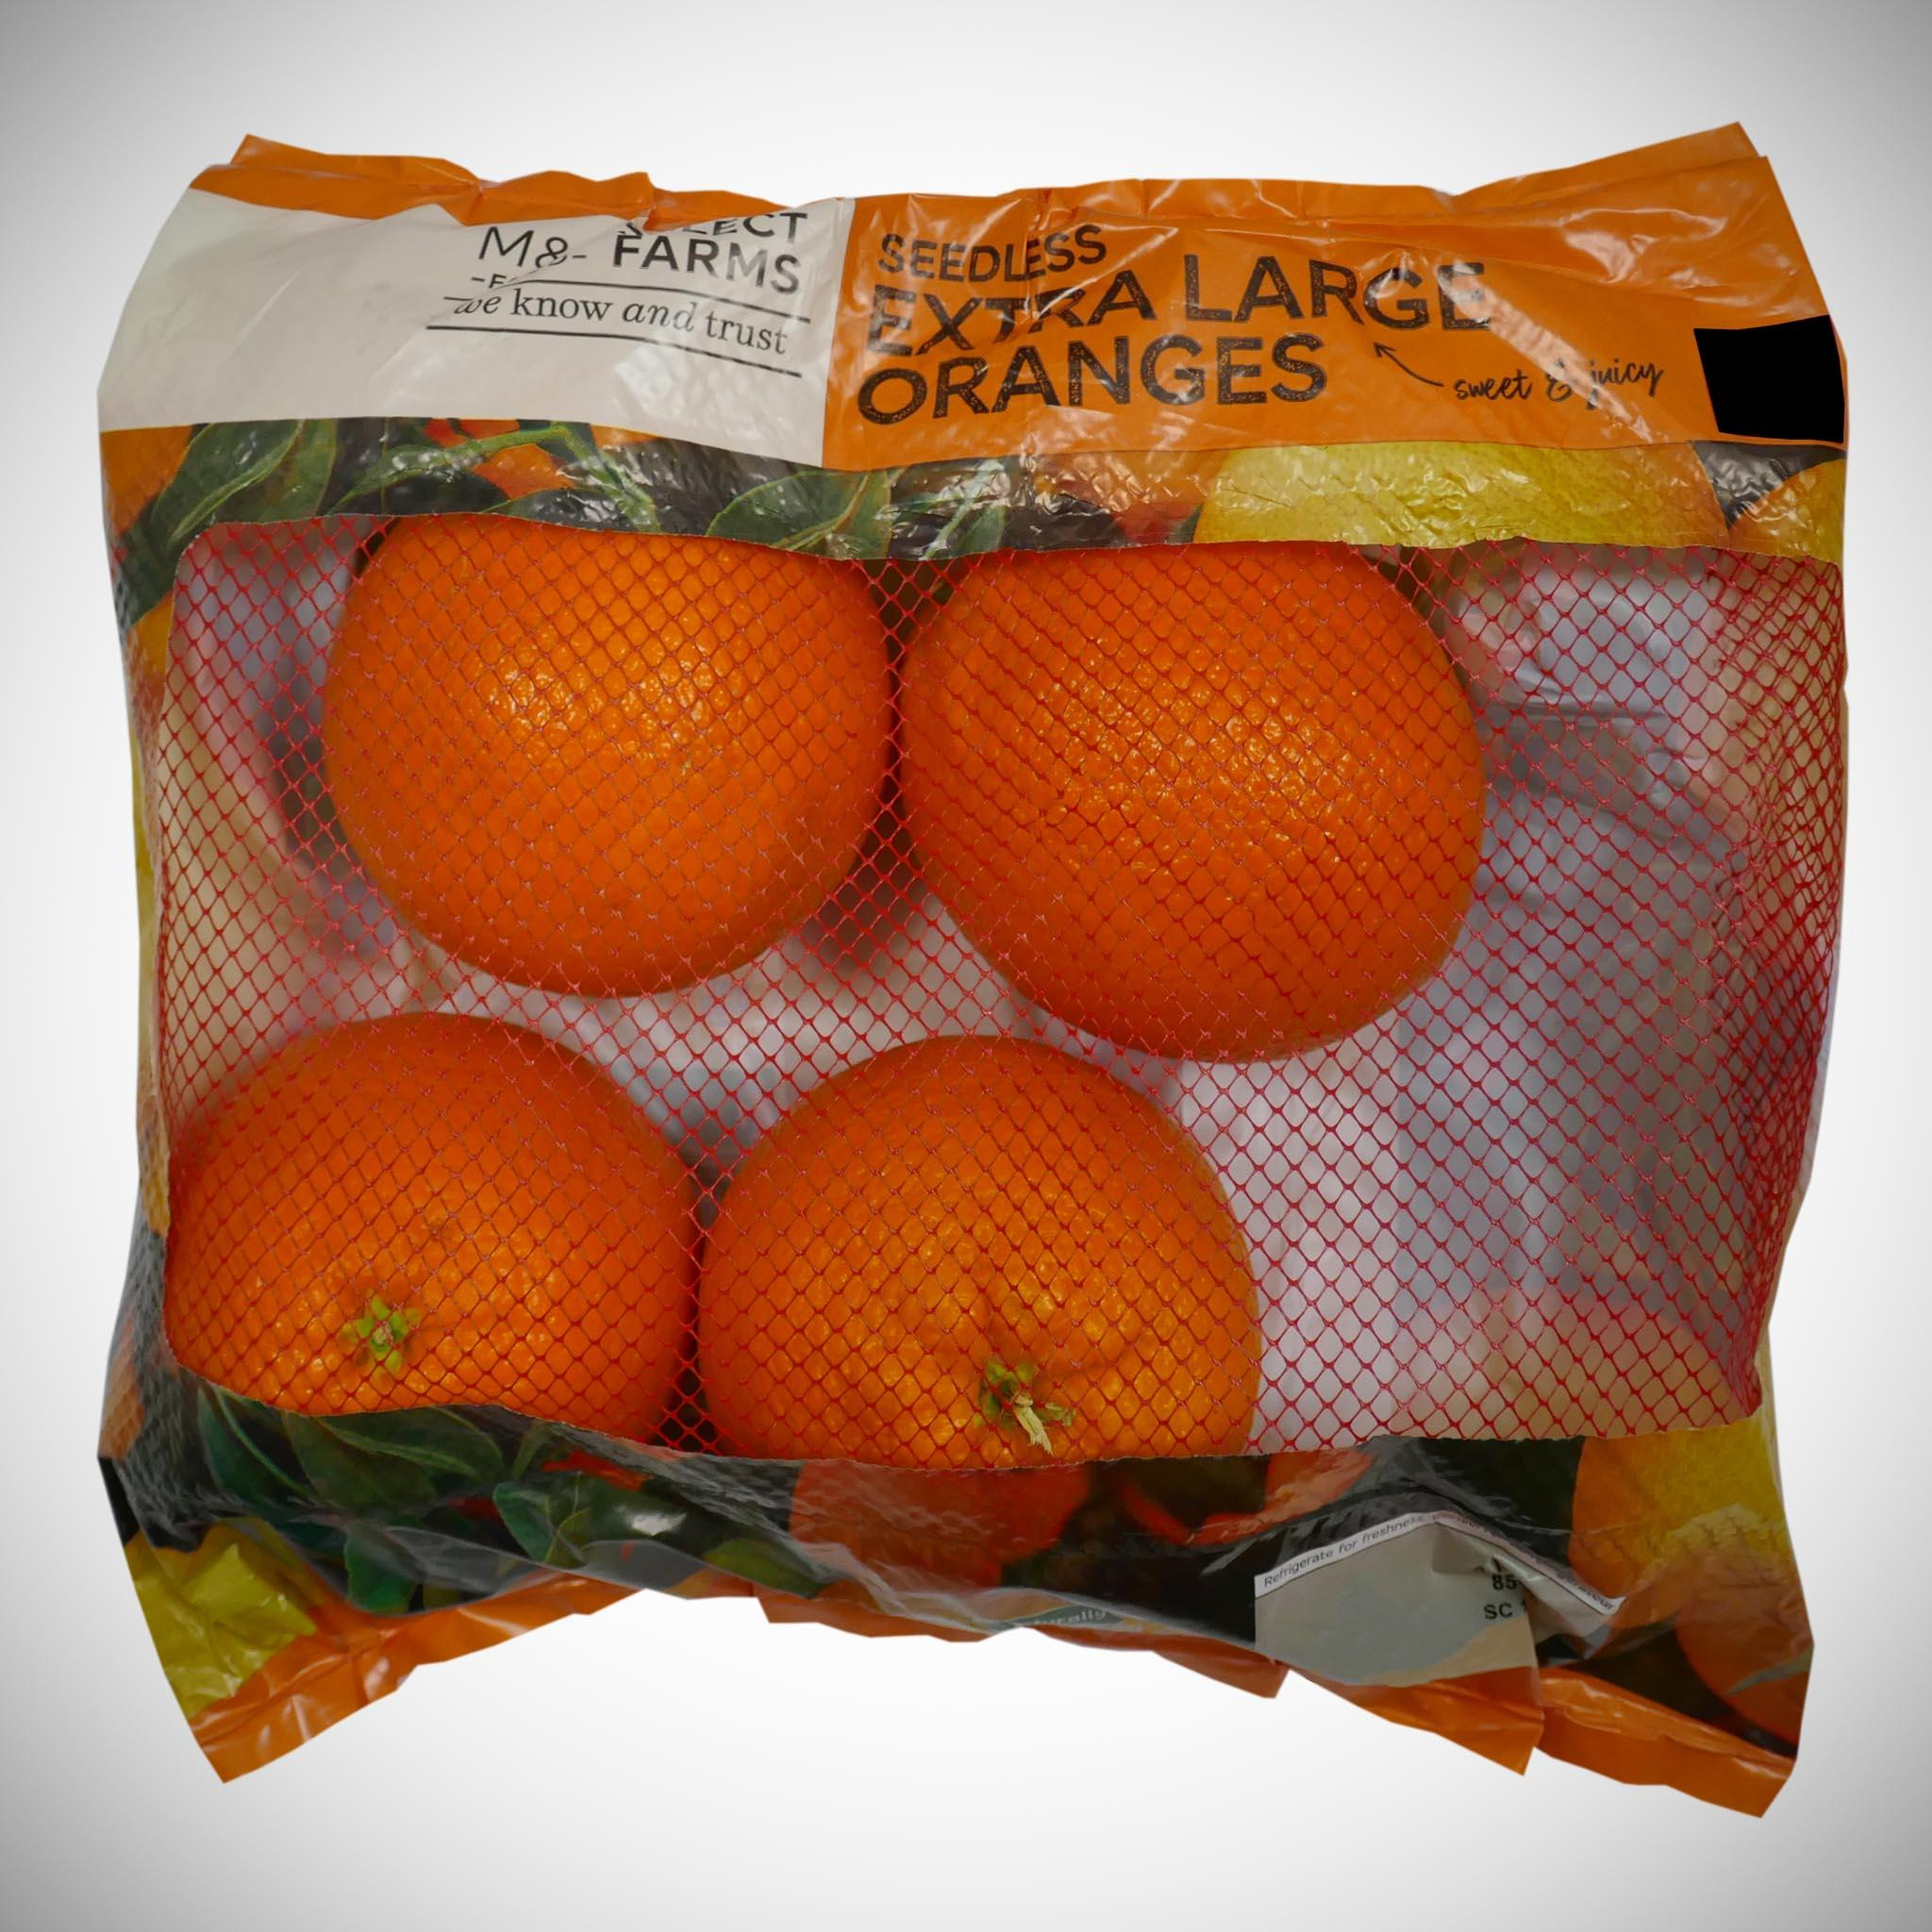 Seedless Extra Large Oranges x 4